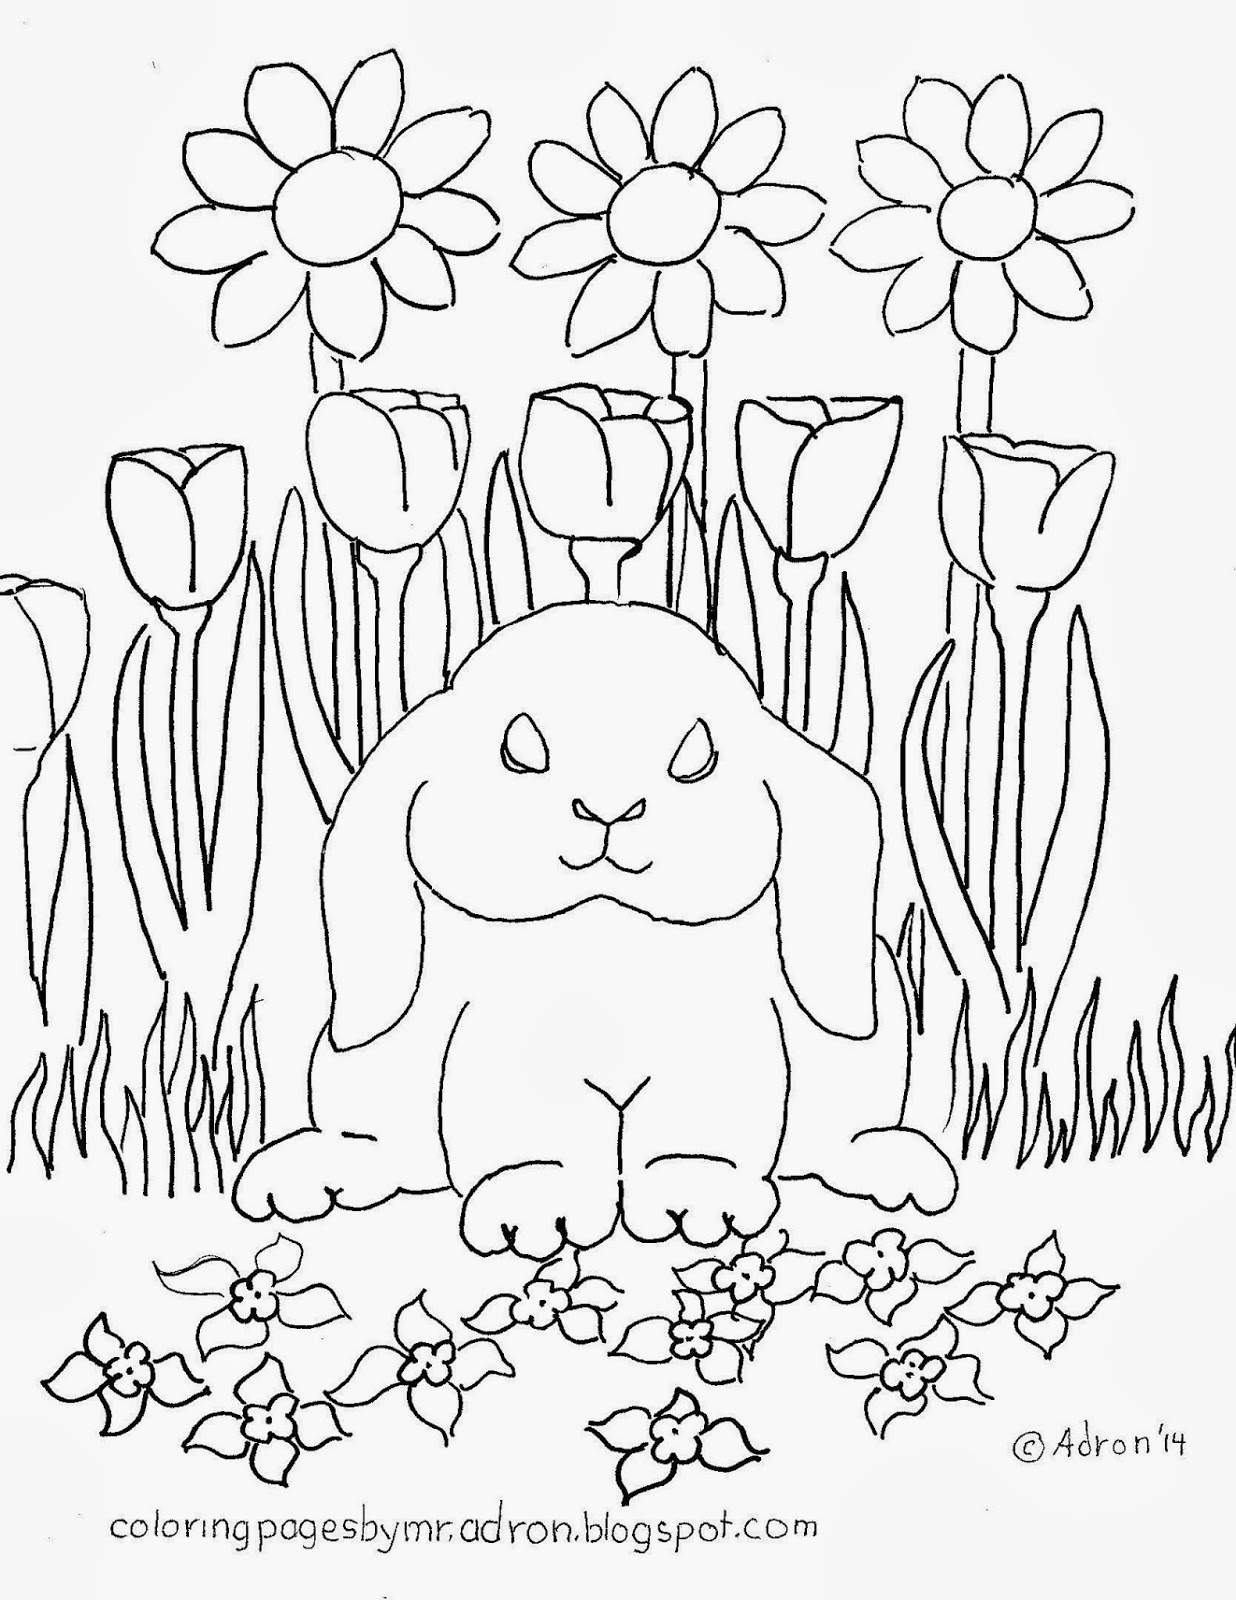 An illustration of a lop eared rabbit to print and color.